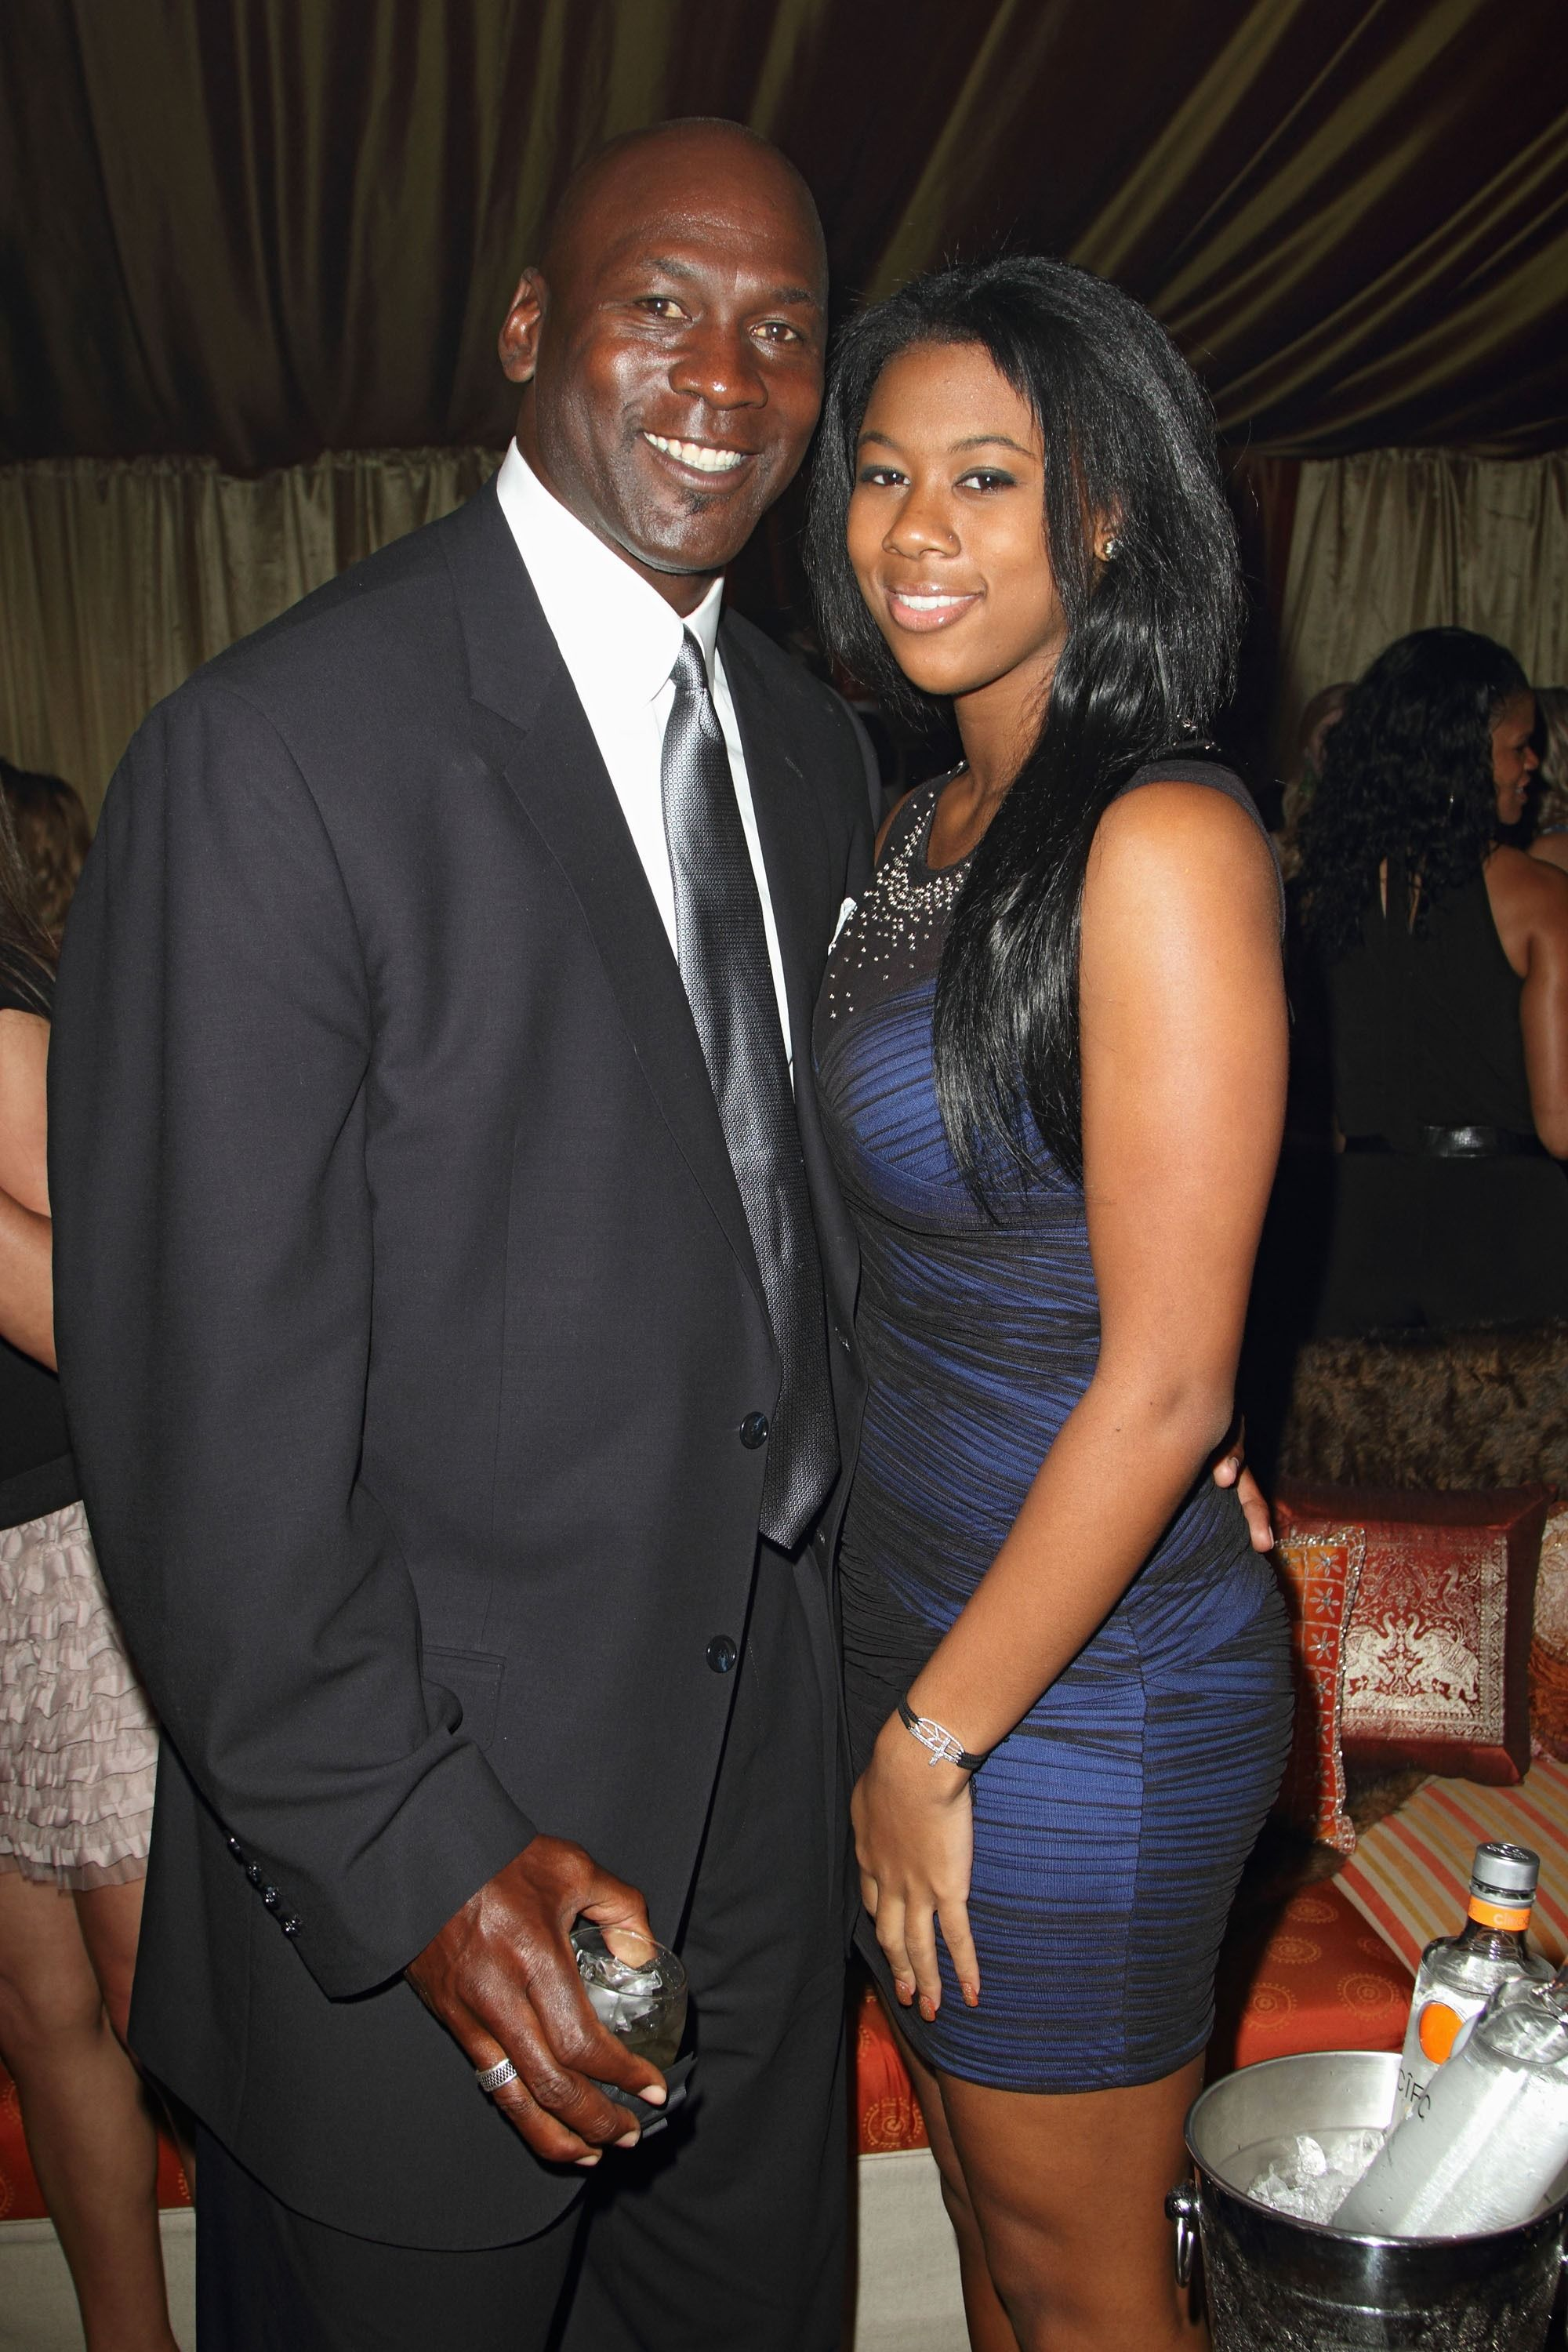 Michael Jordan and Jasmine Jordan during the Jordan All-Star With Fabolous 23 on Feb. 25, 2012 in Florida. | Source: Getty Images